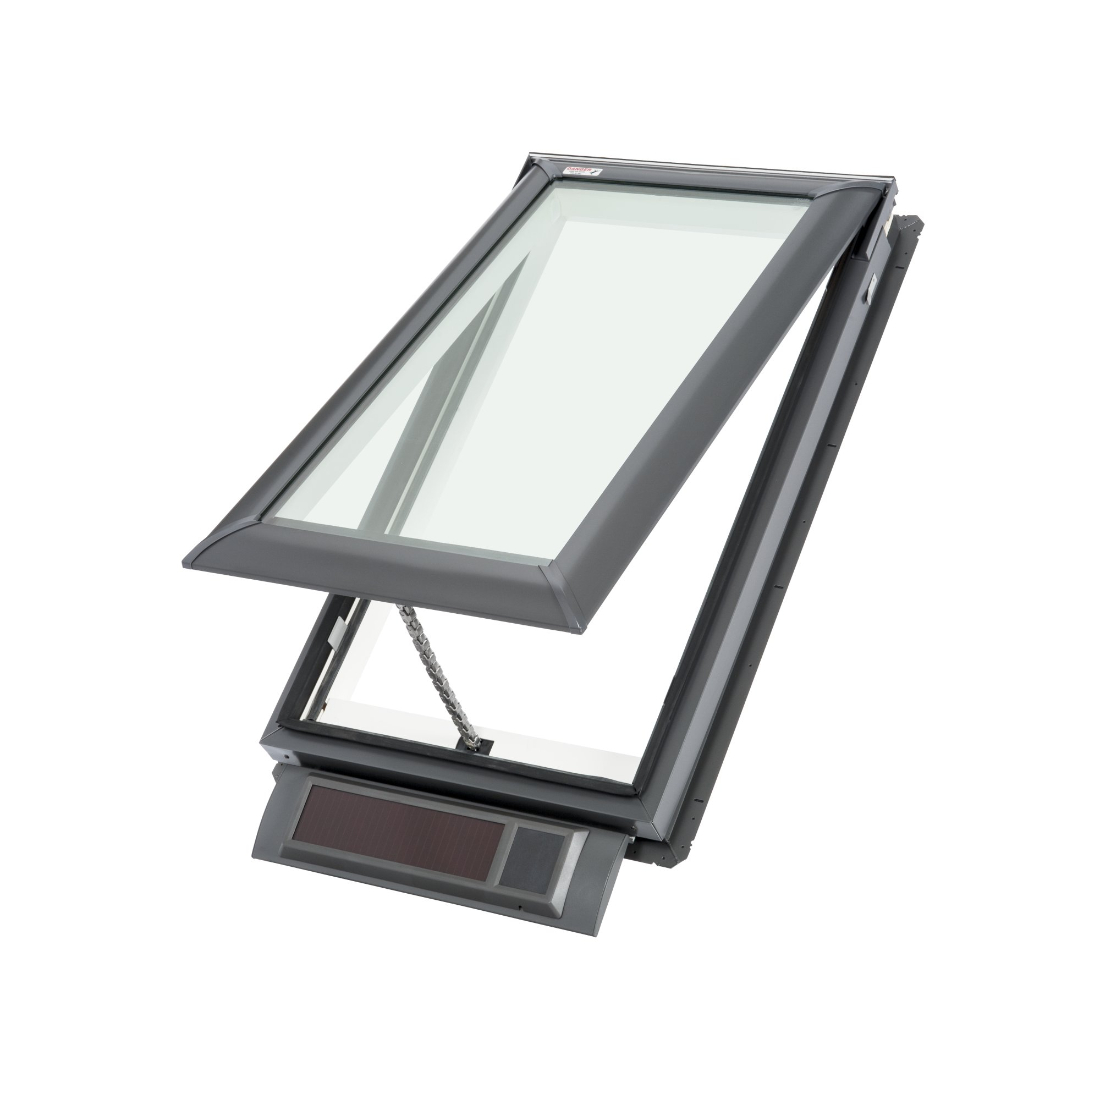 Solar Powered Skylight 780 x 980mm